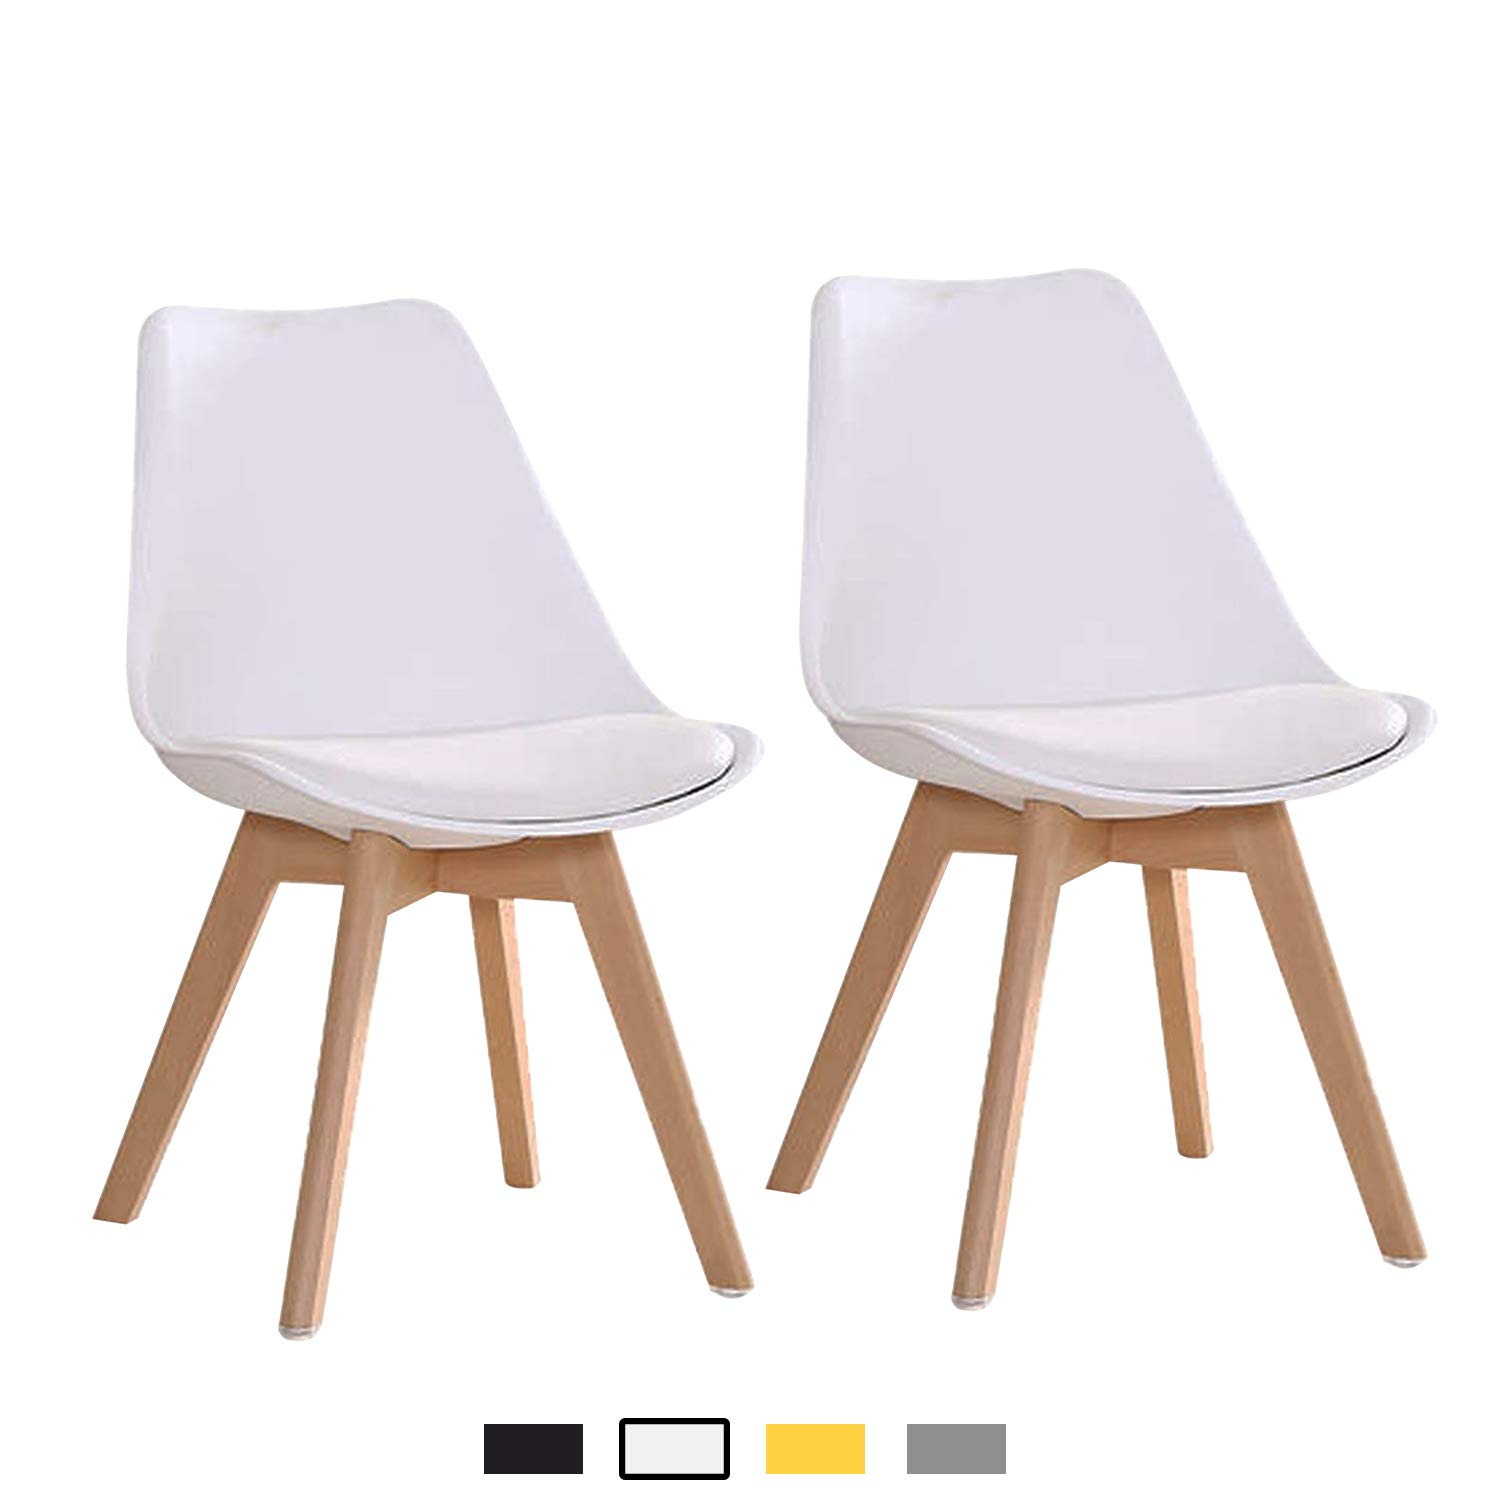 YEEFY Mid Century Modern DSW Dining Chair Upholstered Tulip Chair for Living Room, Dining Room, Set of 2, White